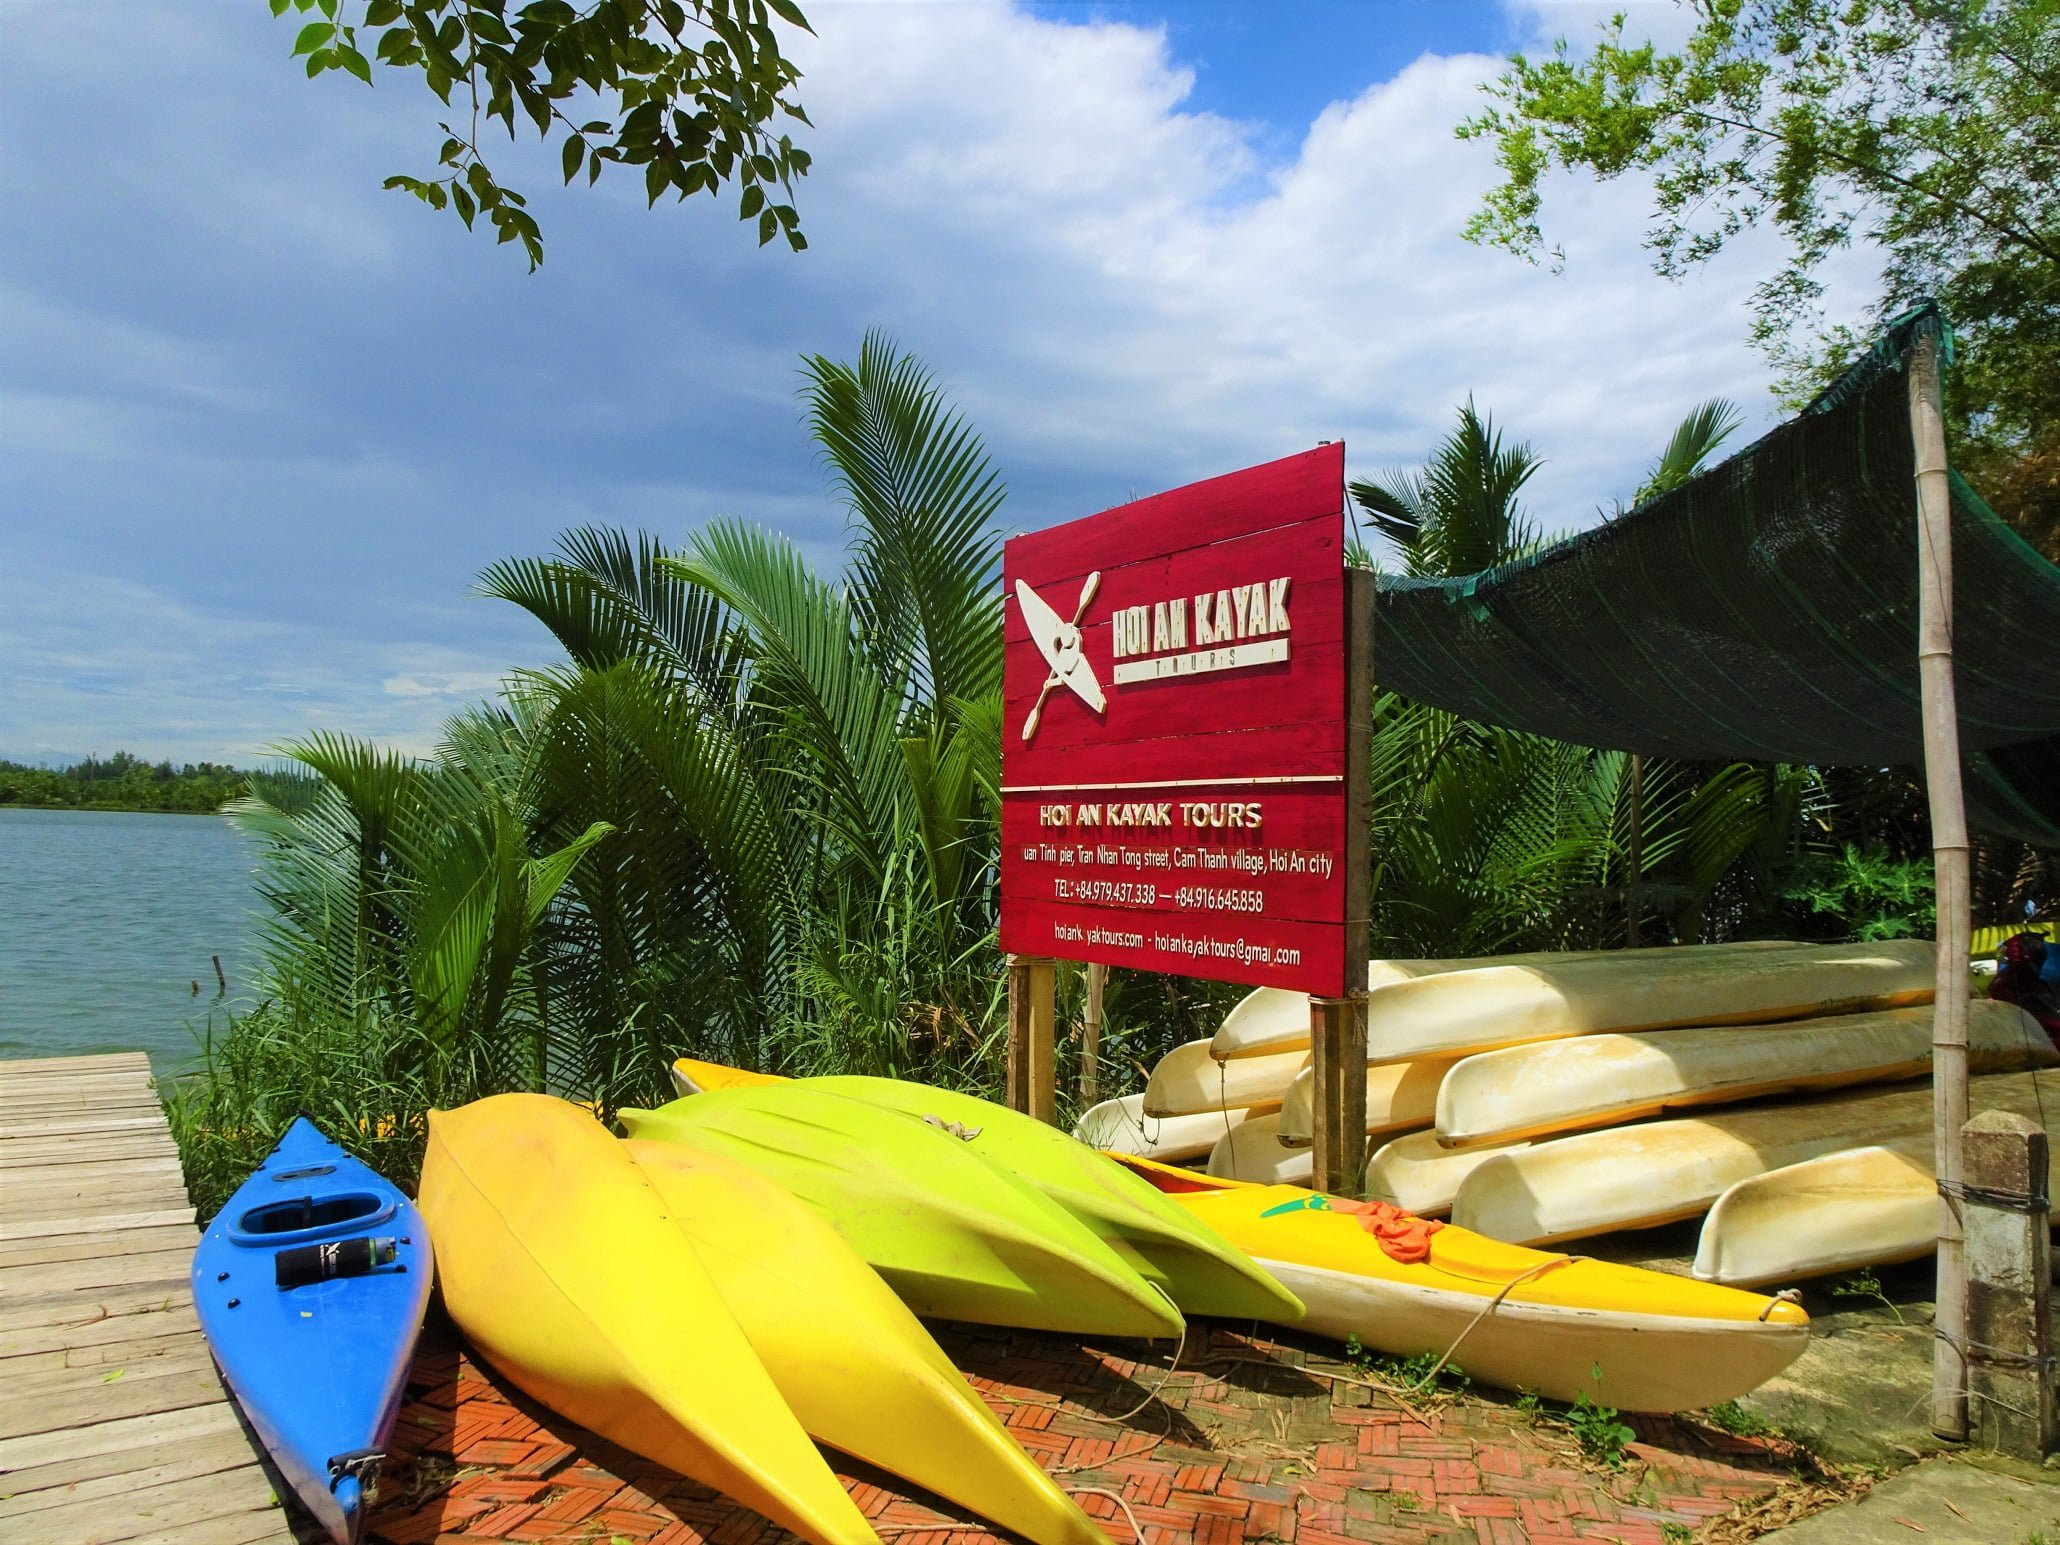 Kayak Rental Launch Point In Hoi An